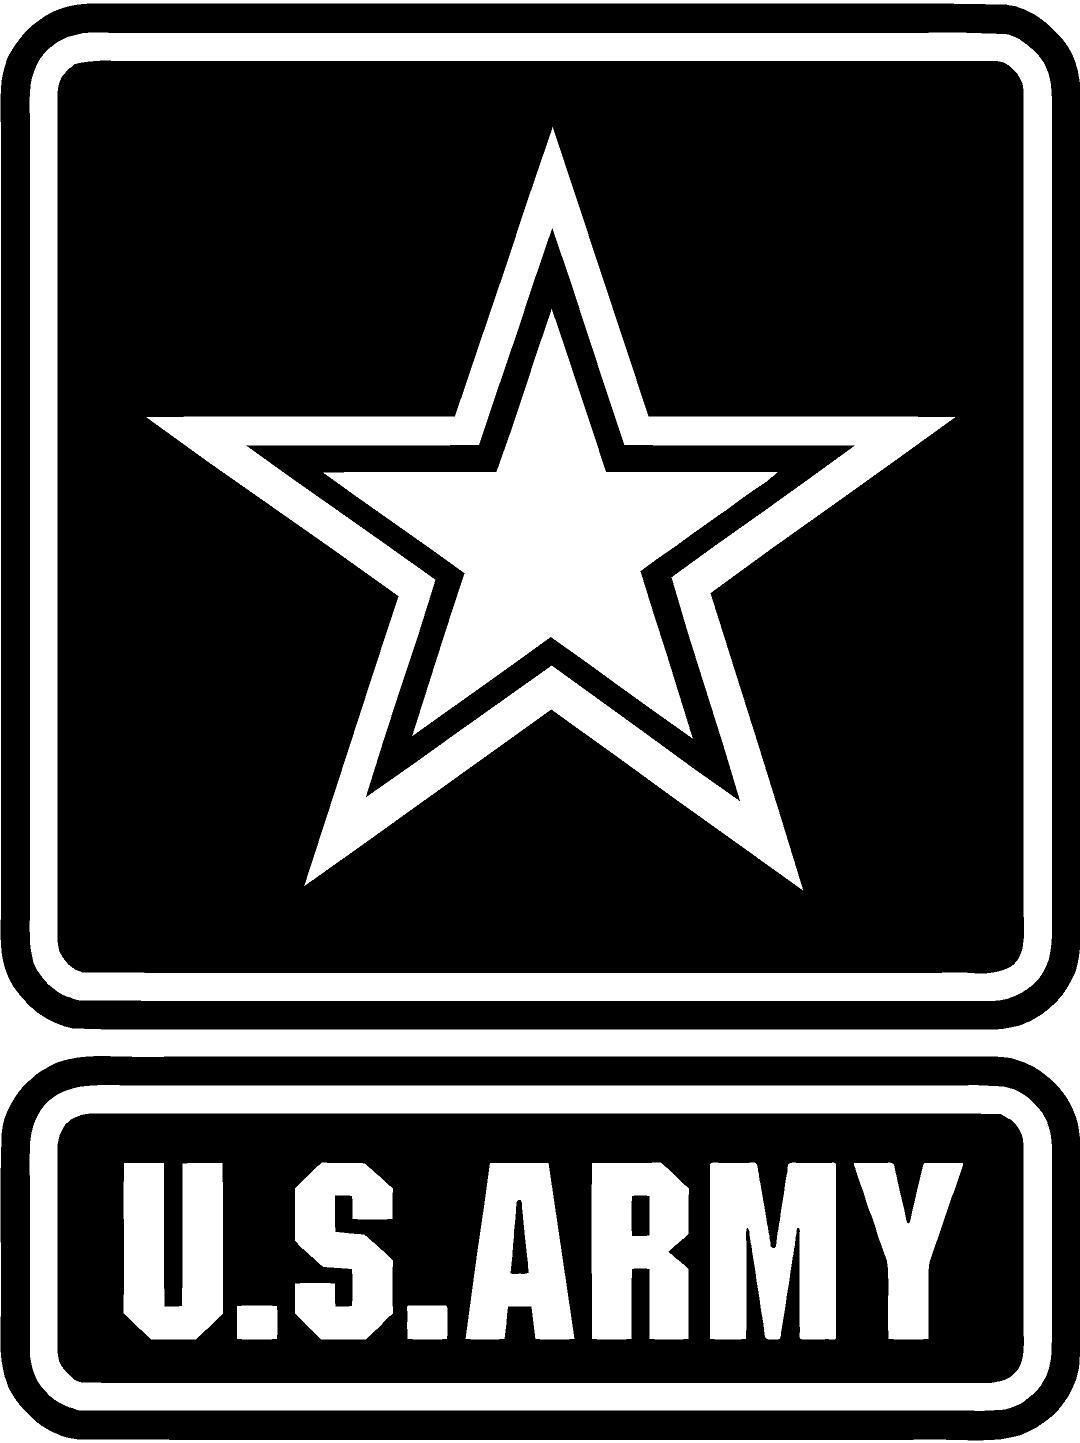 0 99 us army decal sticker free shipping ebay home garden